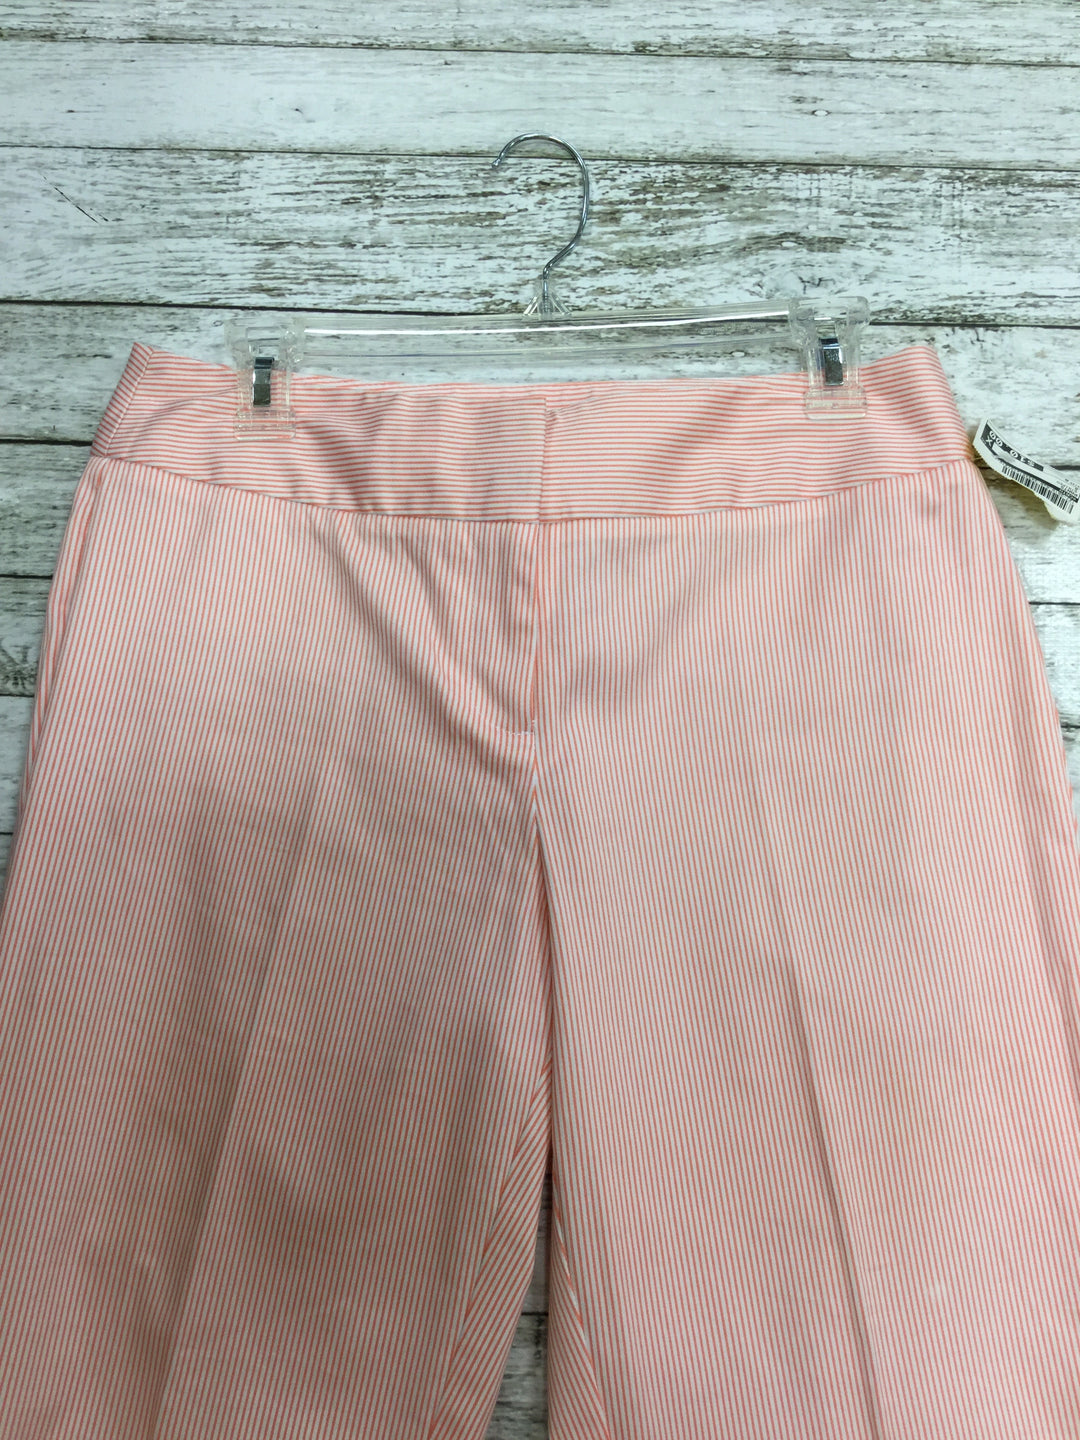 Photo #1 - BRAND: CATO <BR>STYLE: PANTS <BR>COLOR: STRIPED <BR>SIZE: 8 <BR>SKU: 127-2919-6